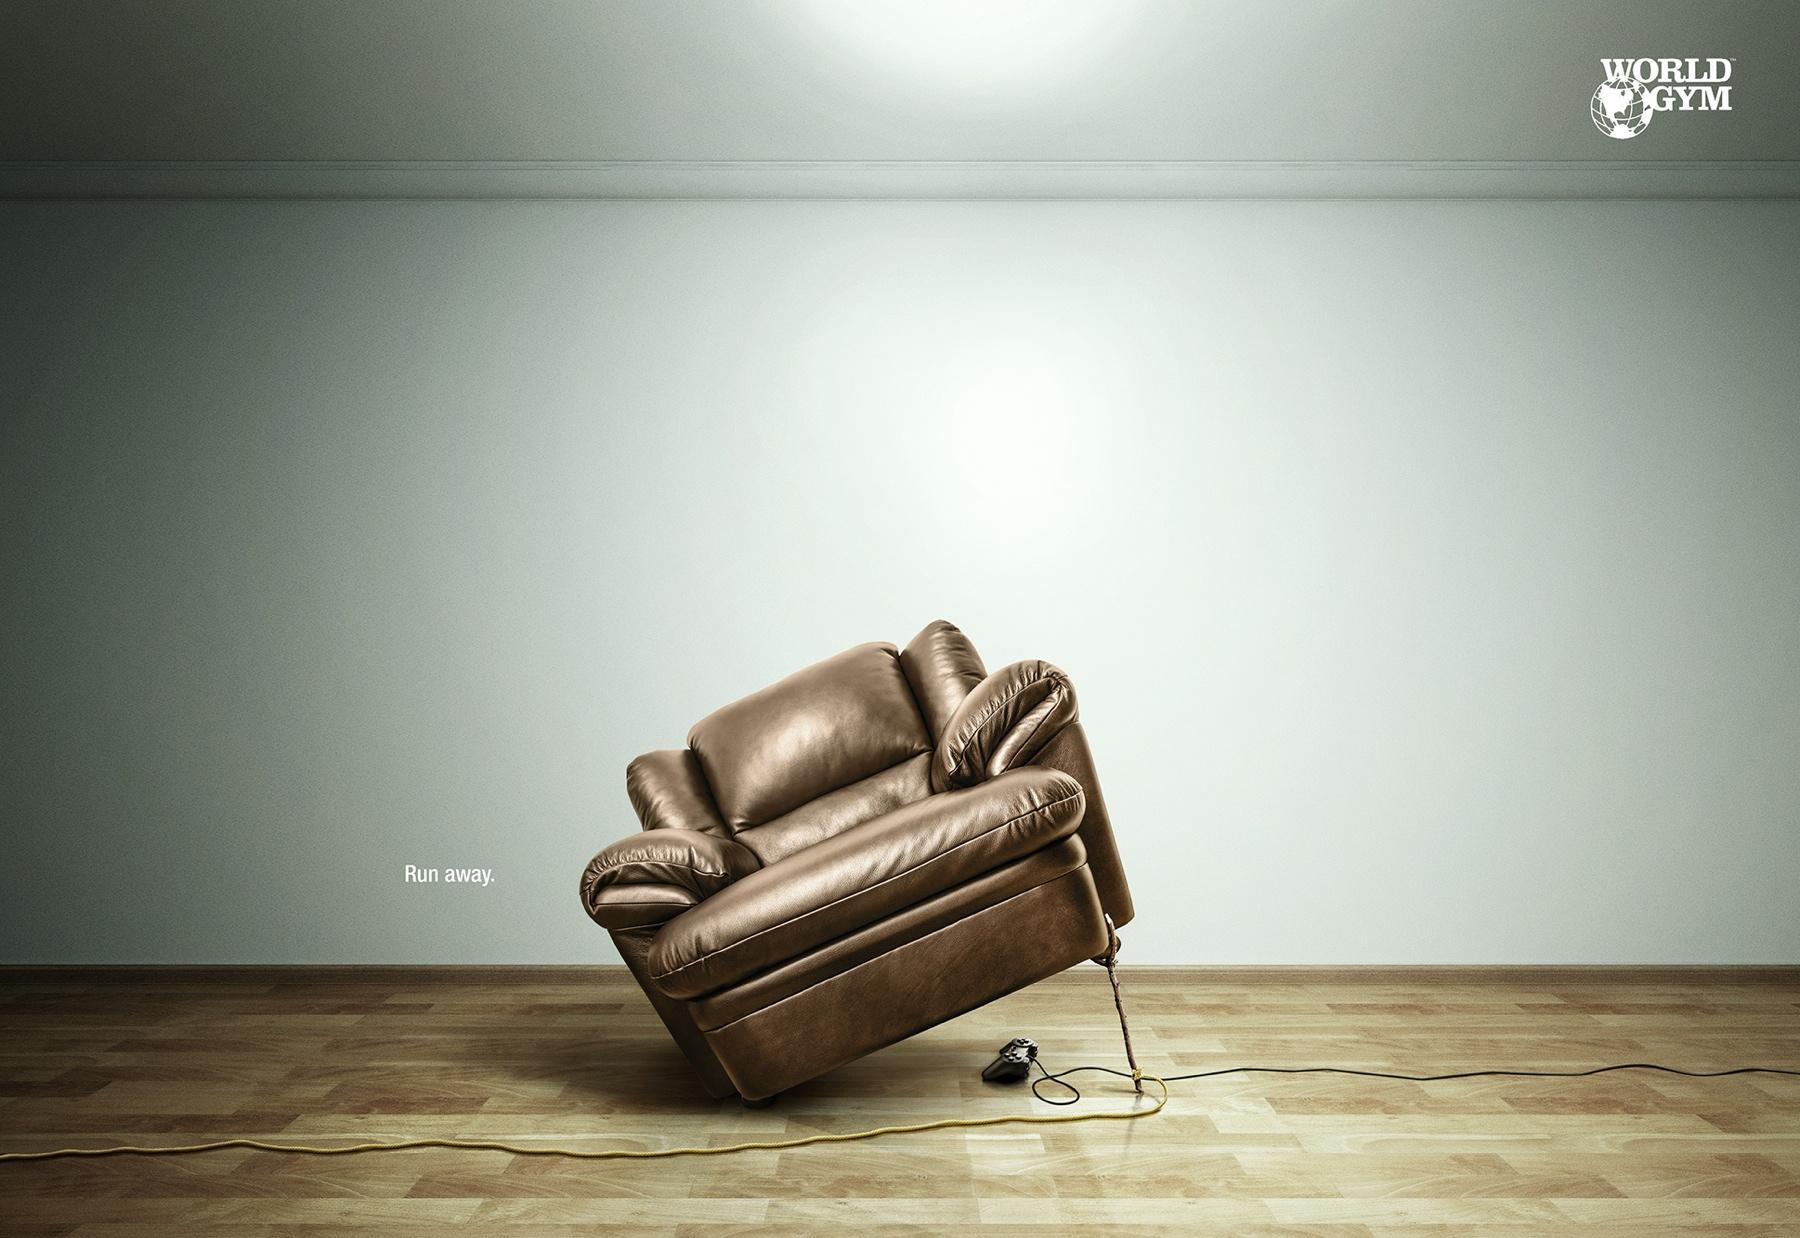 A tilted cushion sofa seat with a rope running through its front right leg.